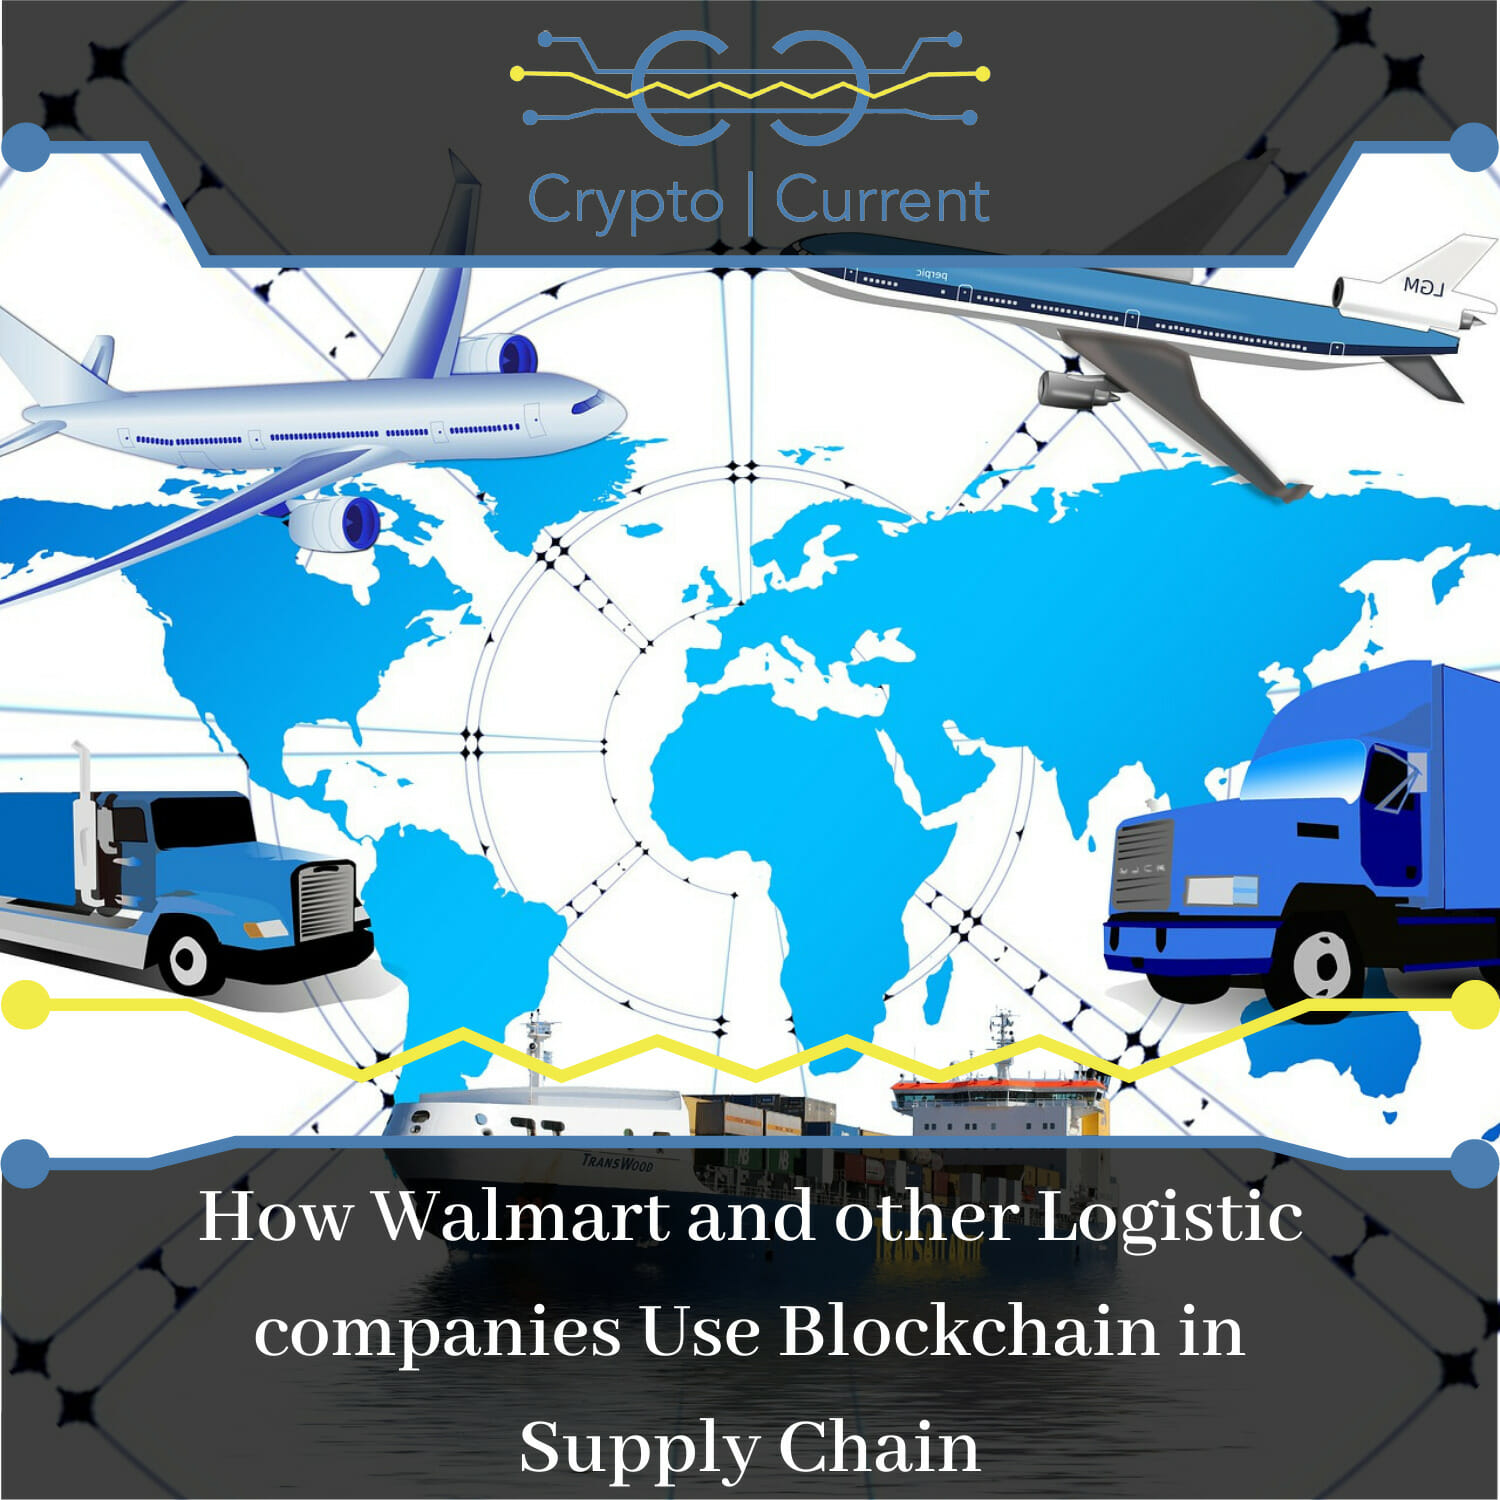 How Walmart and other Logistic companies Use Blockchain in Supply Chain